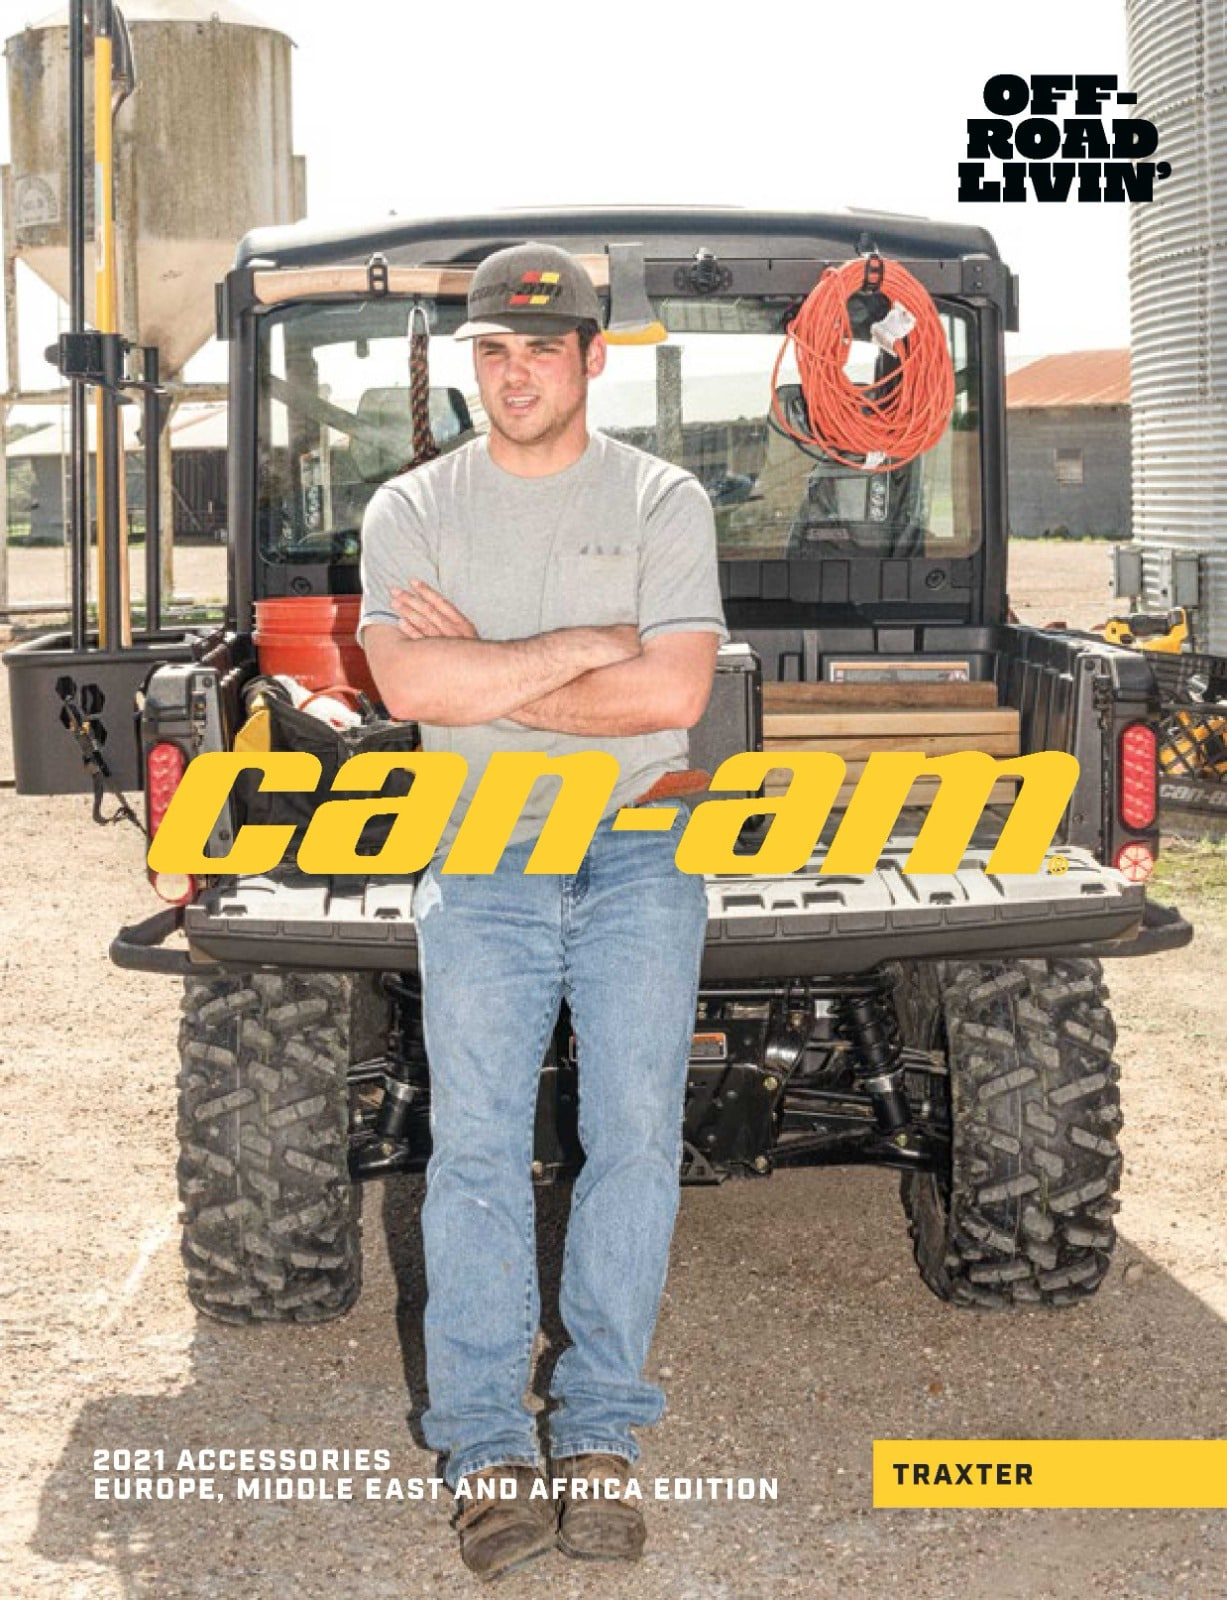 Catalog accesorii Can-Am Traxter 2021